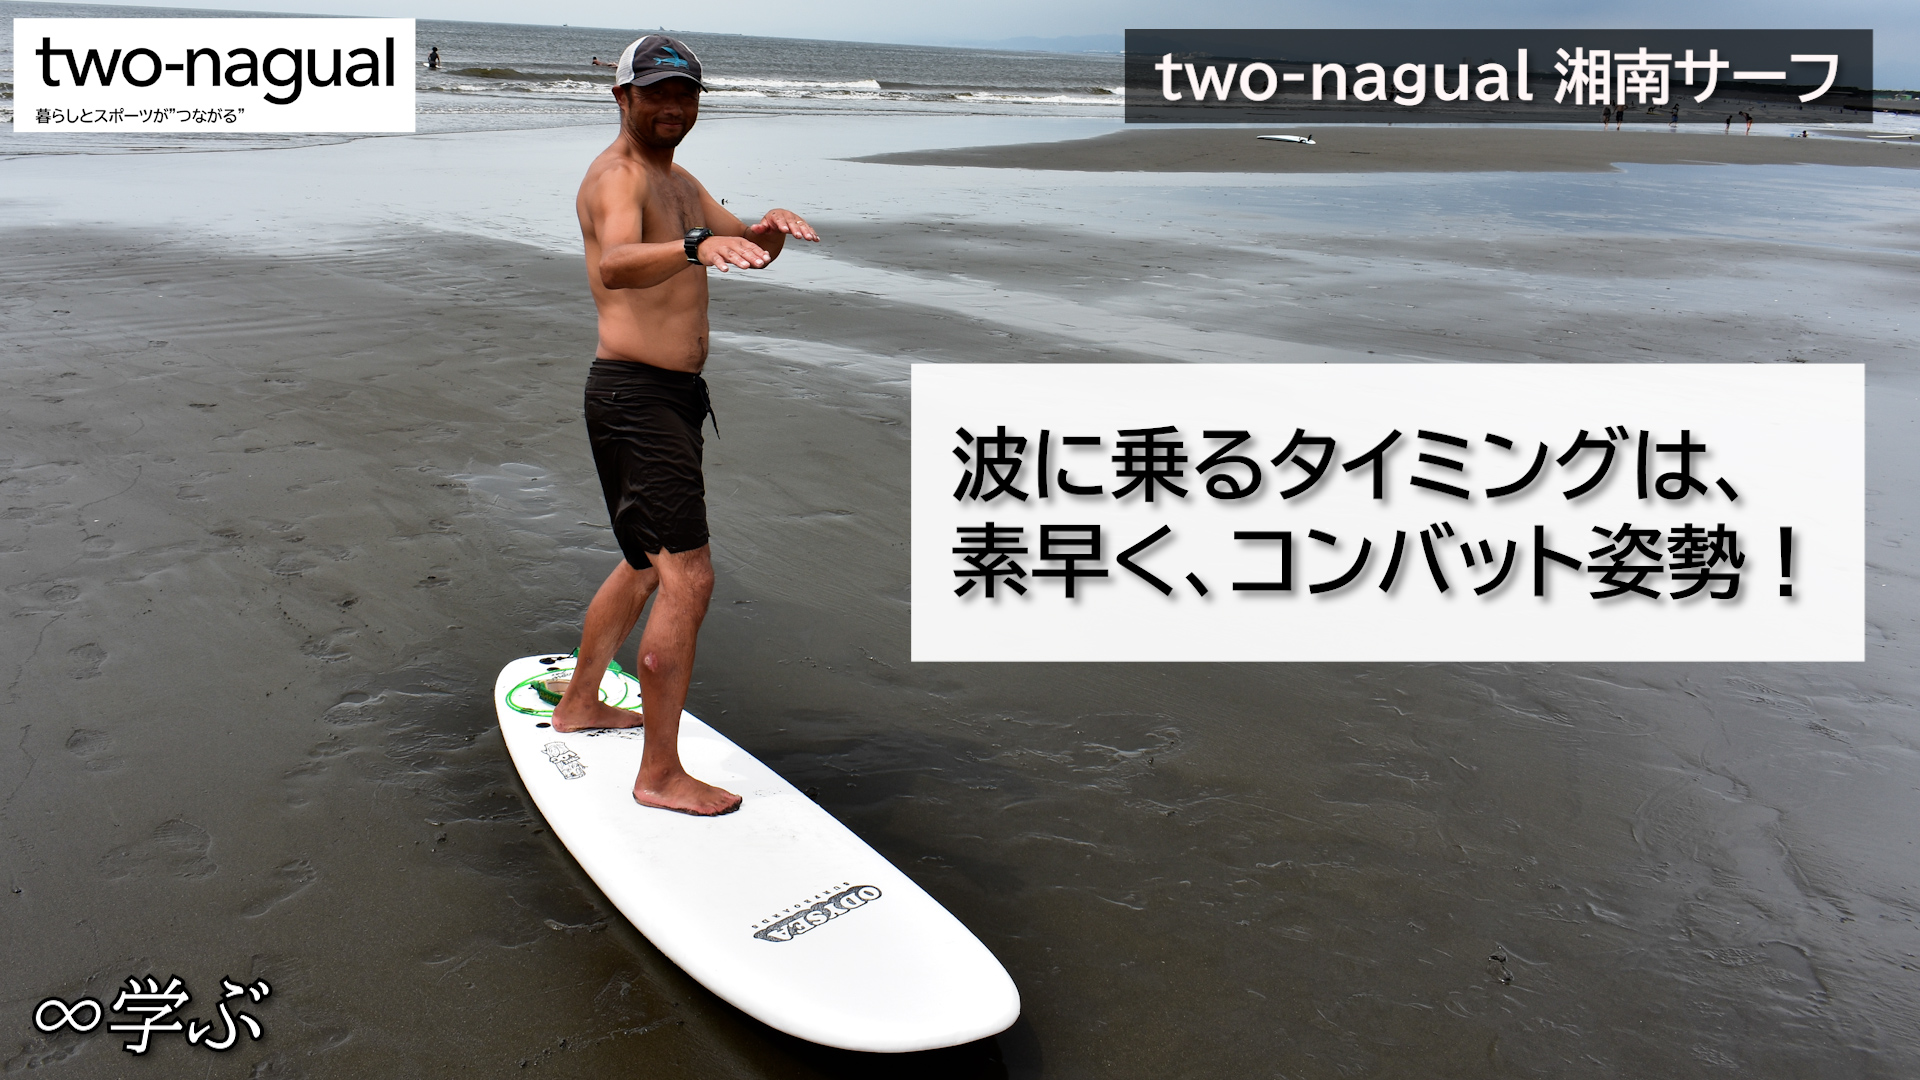 <small>【two-nagual Surfing】</small><br />波に乗るタイミングは、素早く、コンバット姿勢!